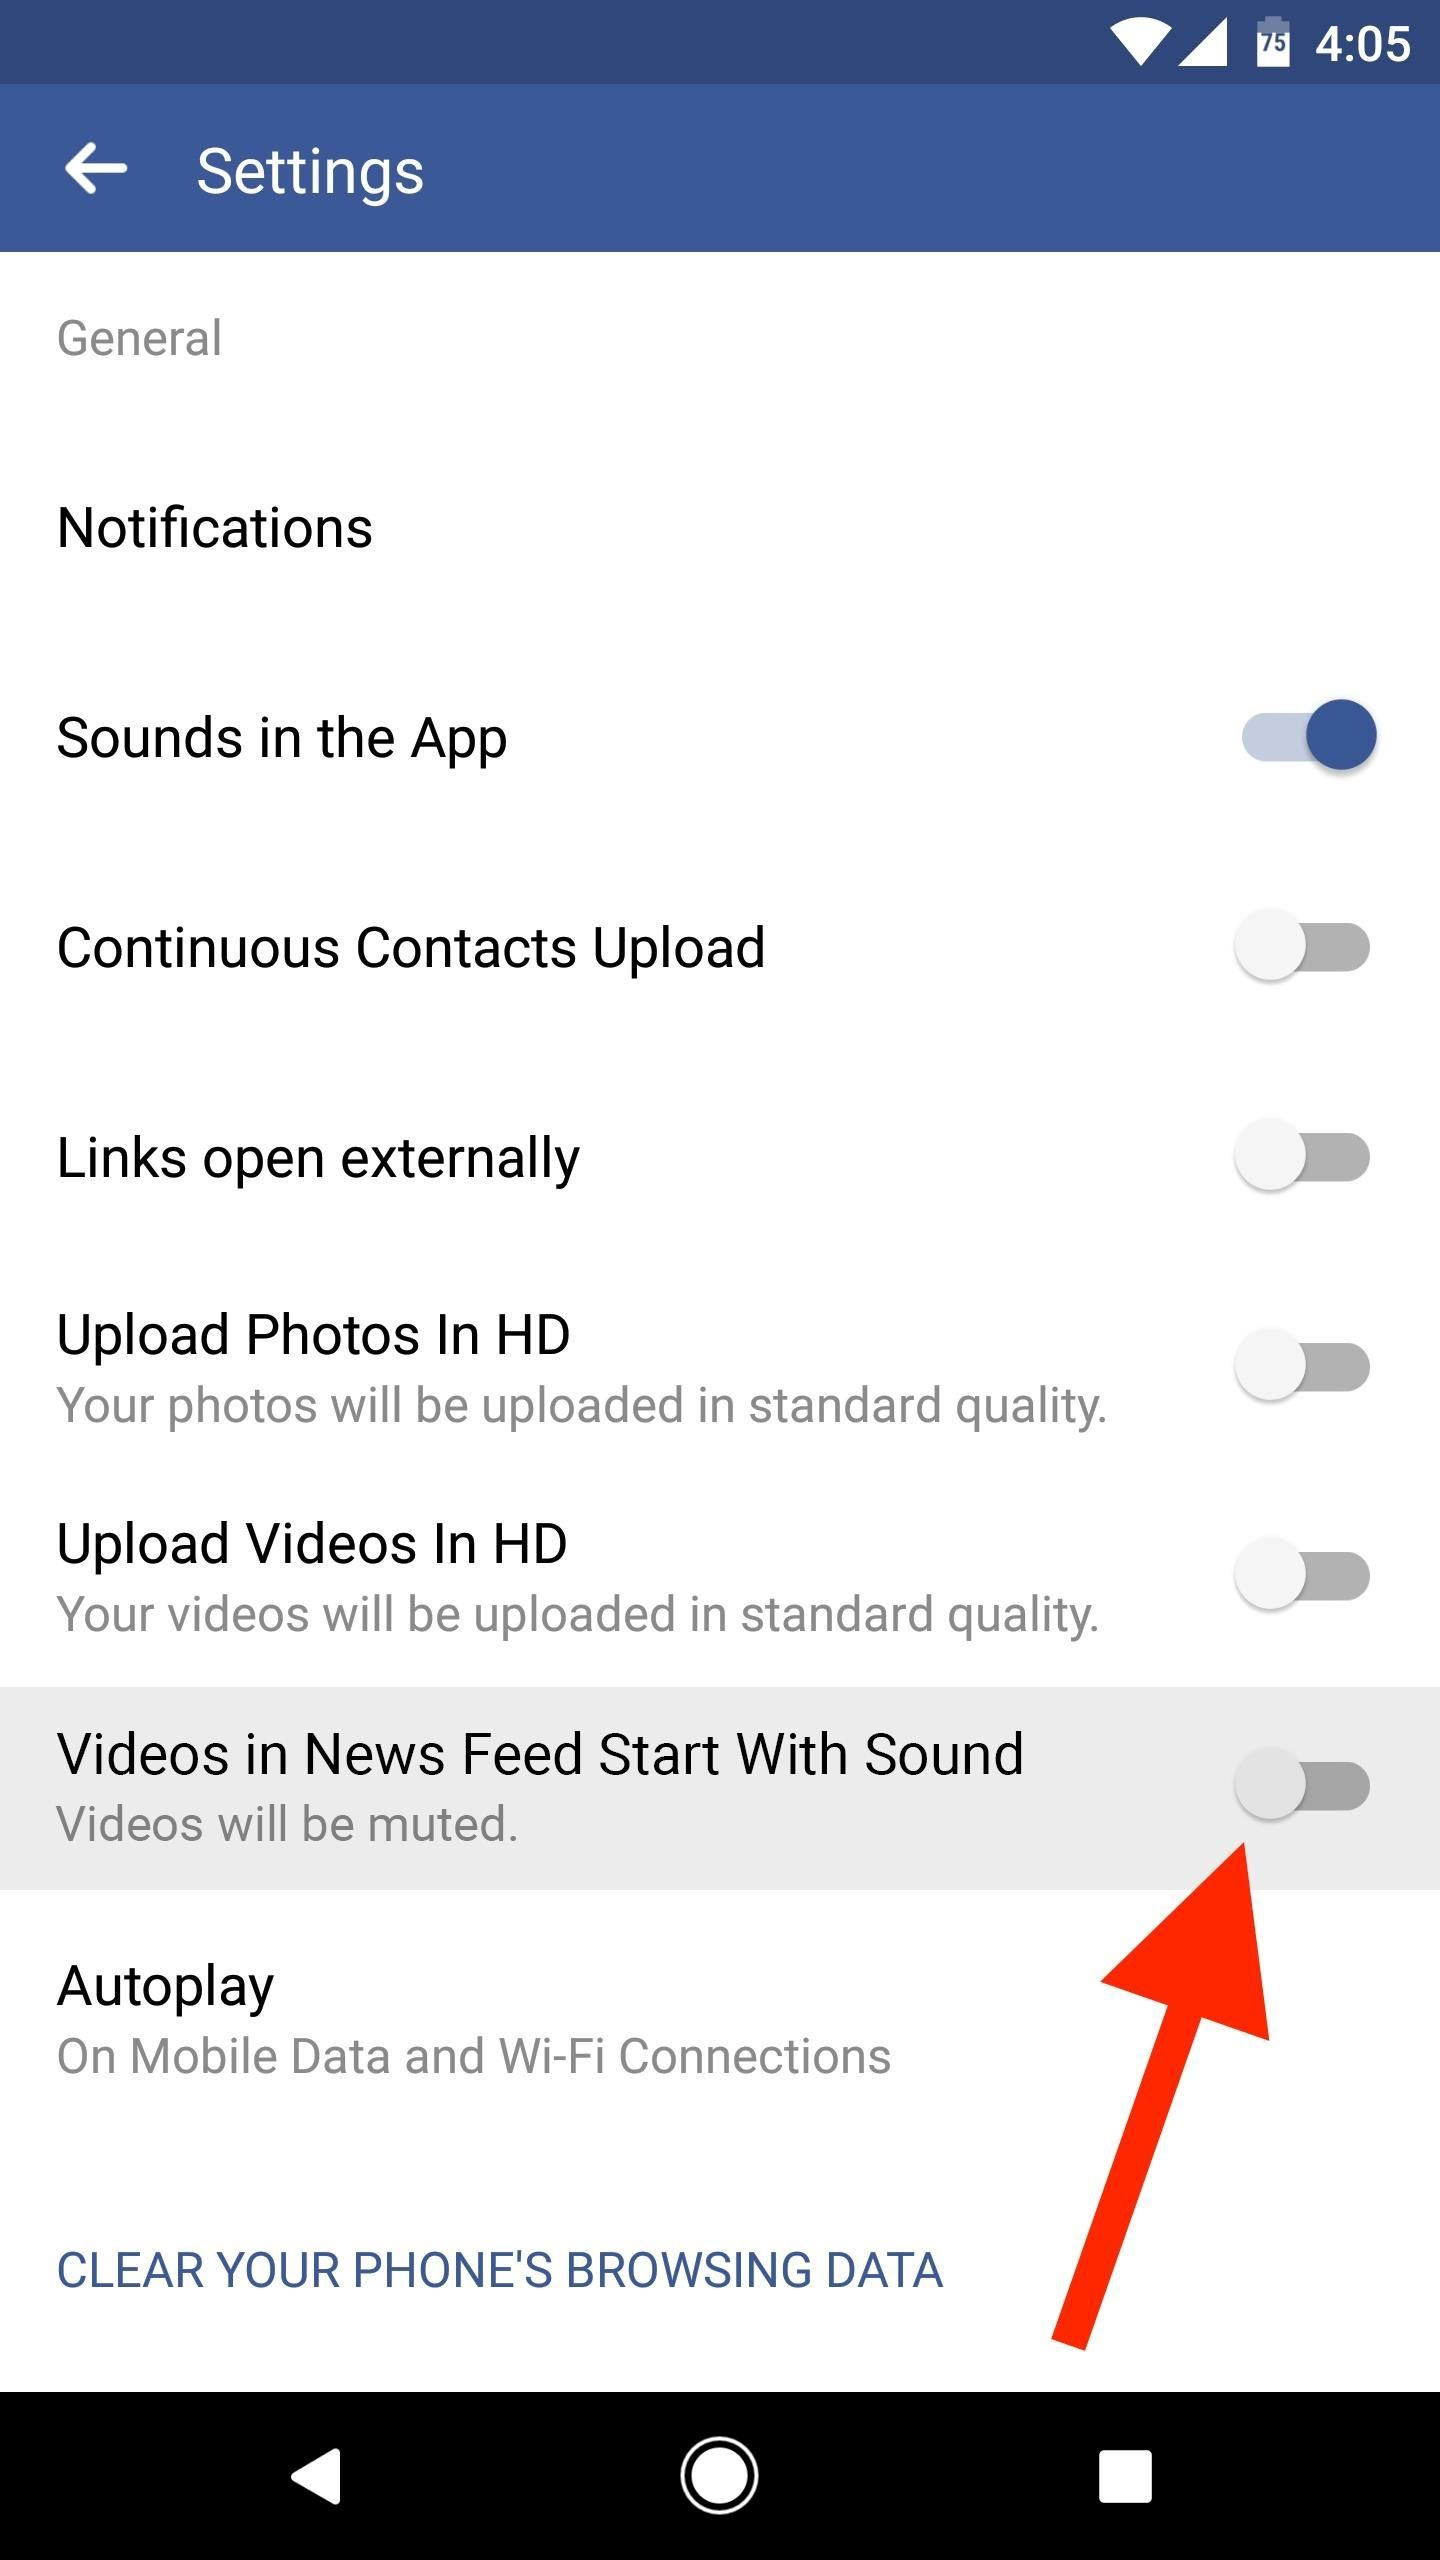 Don't Miss: How To Disable Those Annoying Autoplay Videos On Facebook How To